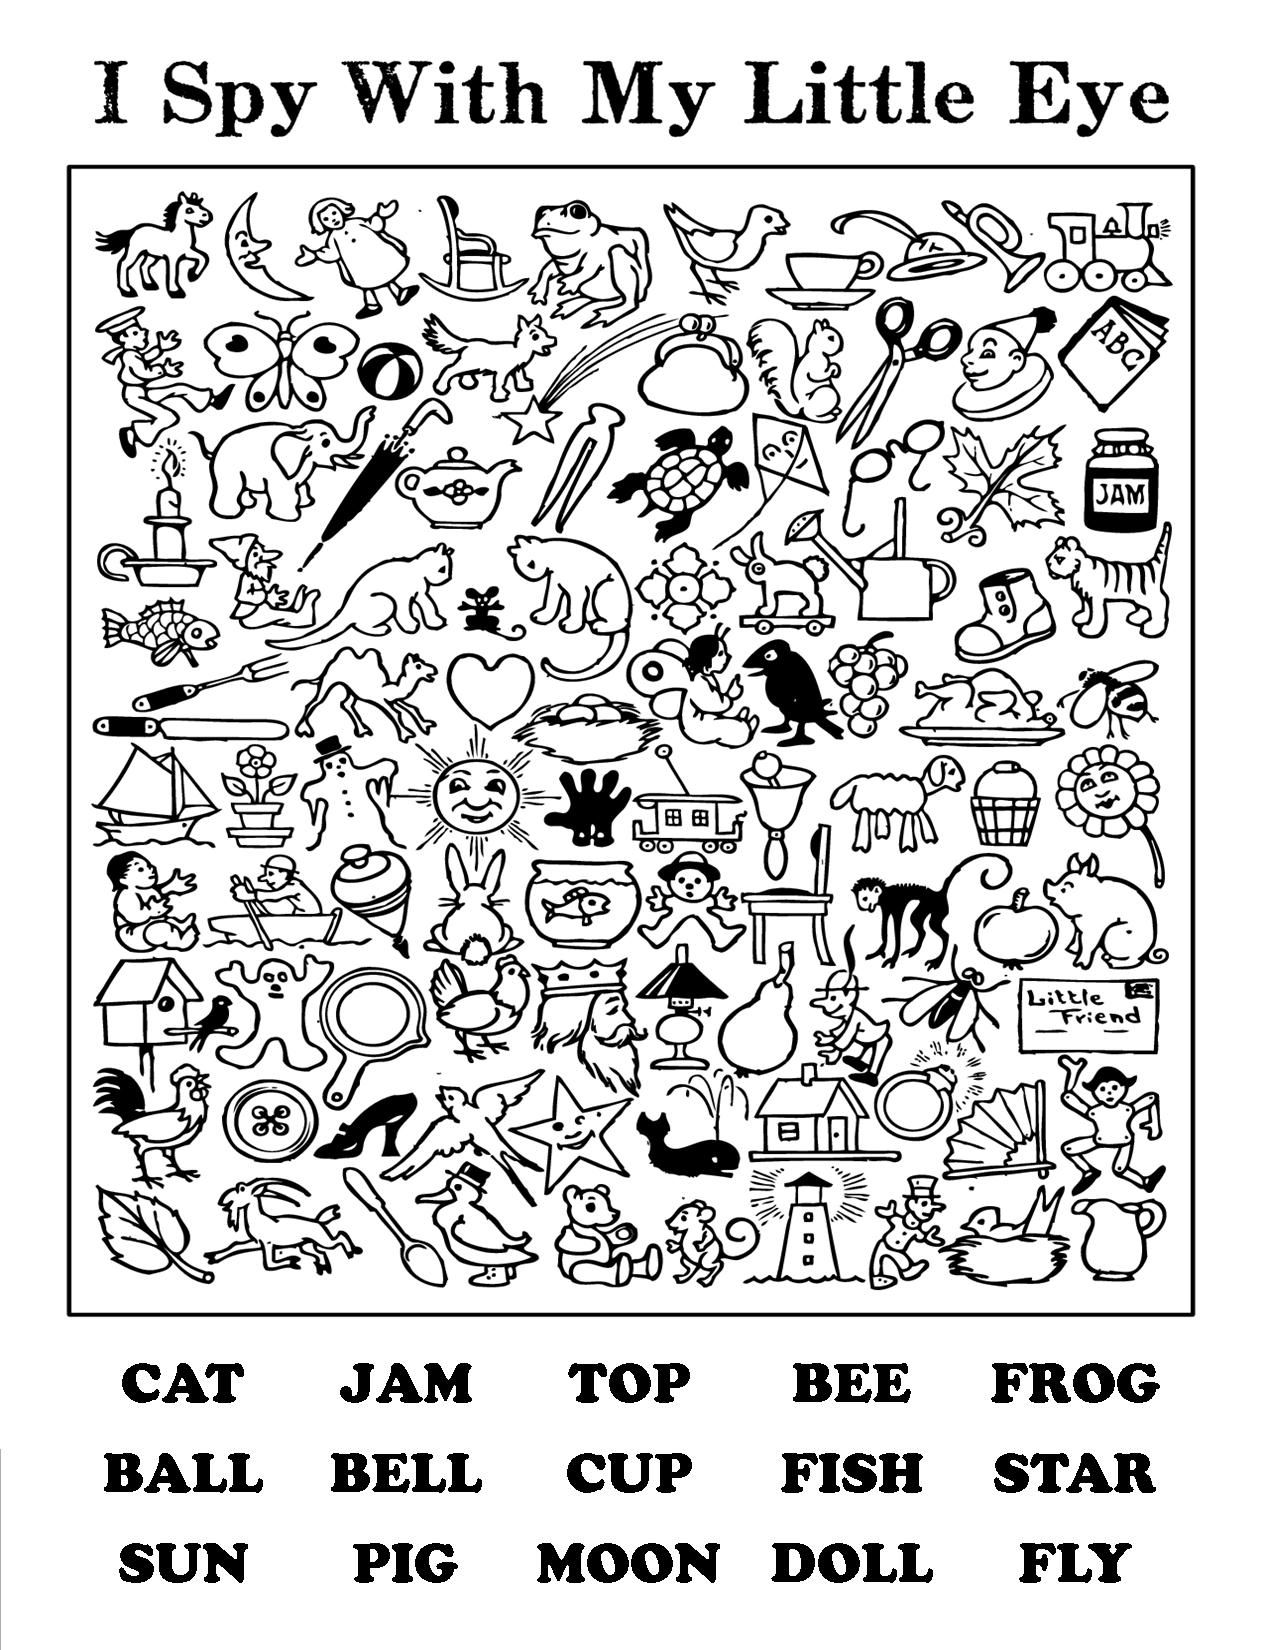 i spy with words - helps with letter and word recognition   Coloring pages [ 1650 x 1275 Pixel ]